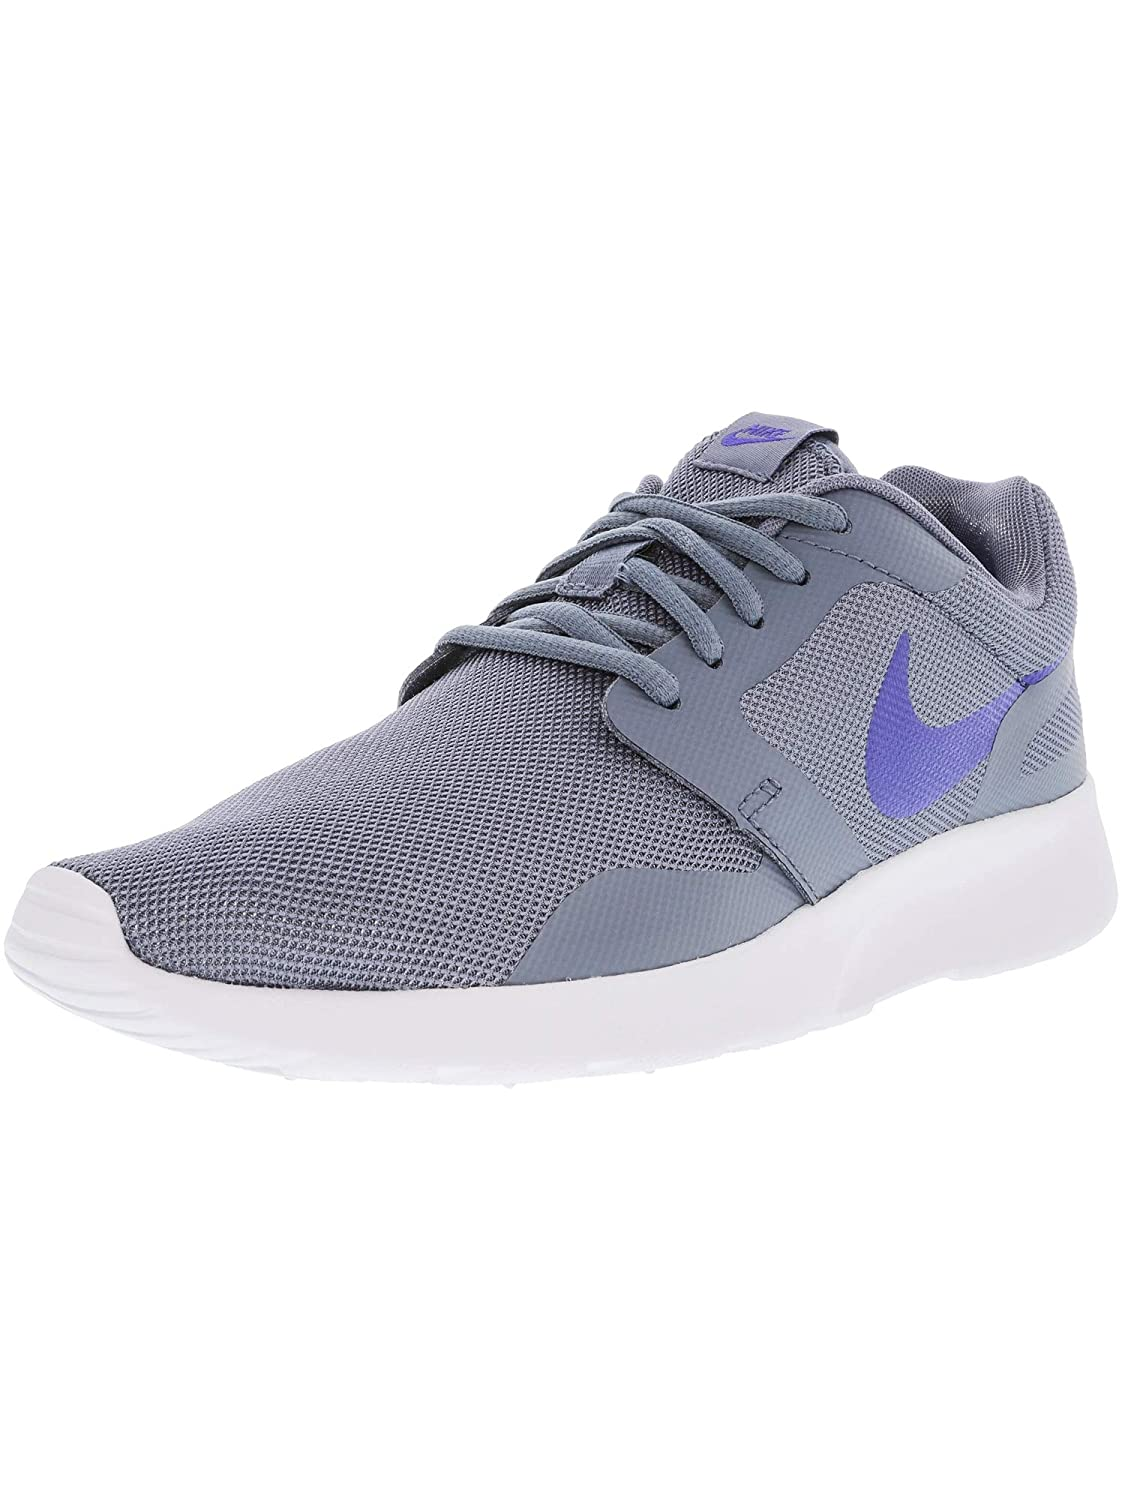 sneakers for cheap 4f20d 8a04d Amazon.com   Nike Women s Kaishi Running Shoe   Road Running